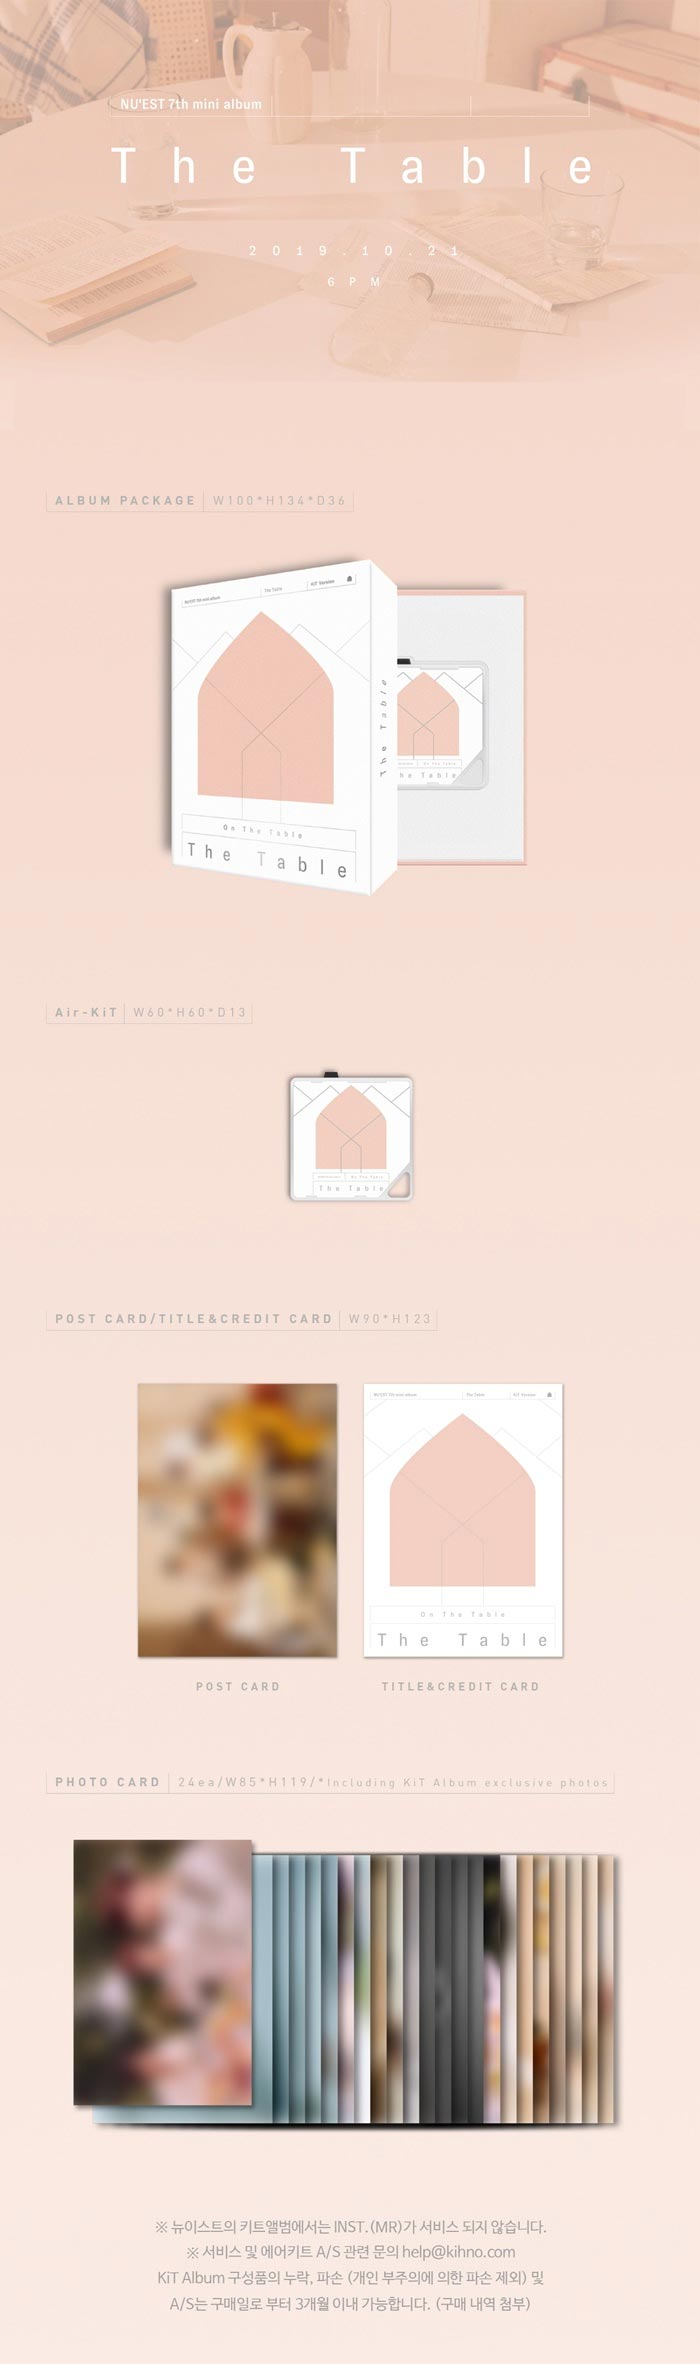 nuest_THE_TABLE_KIT